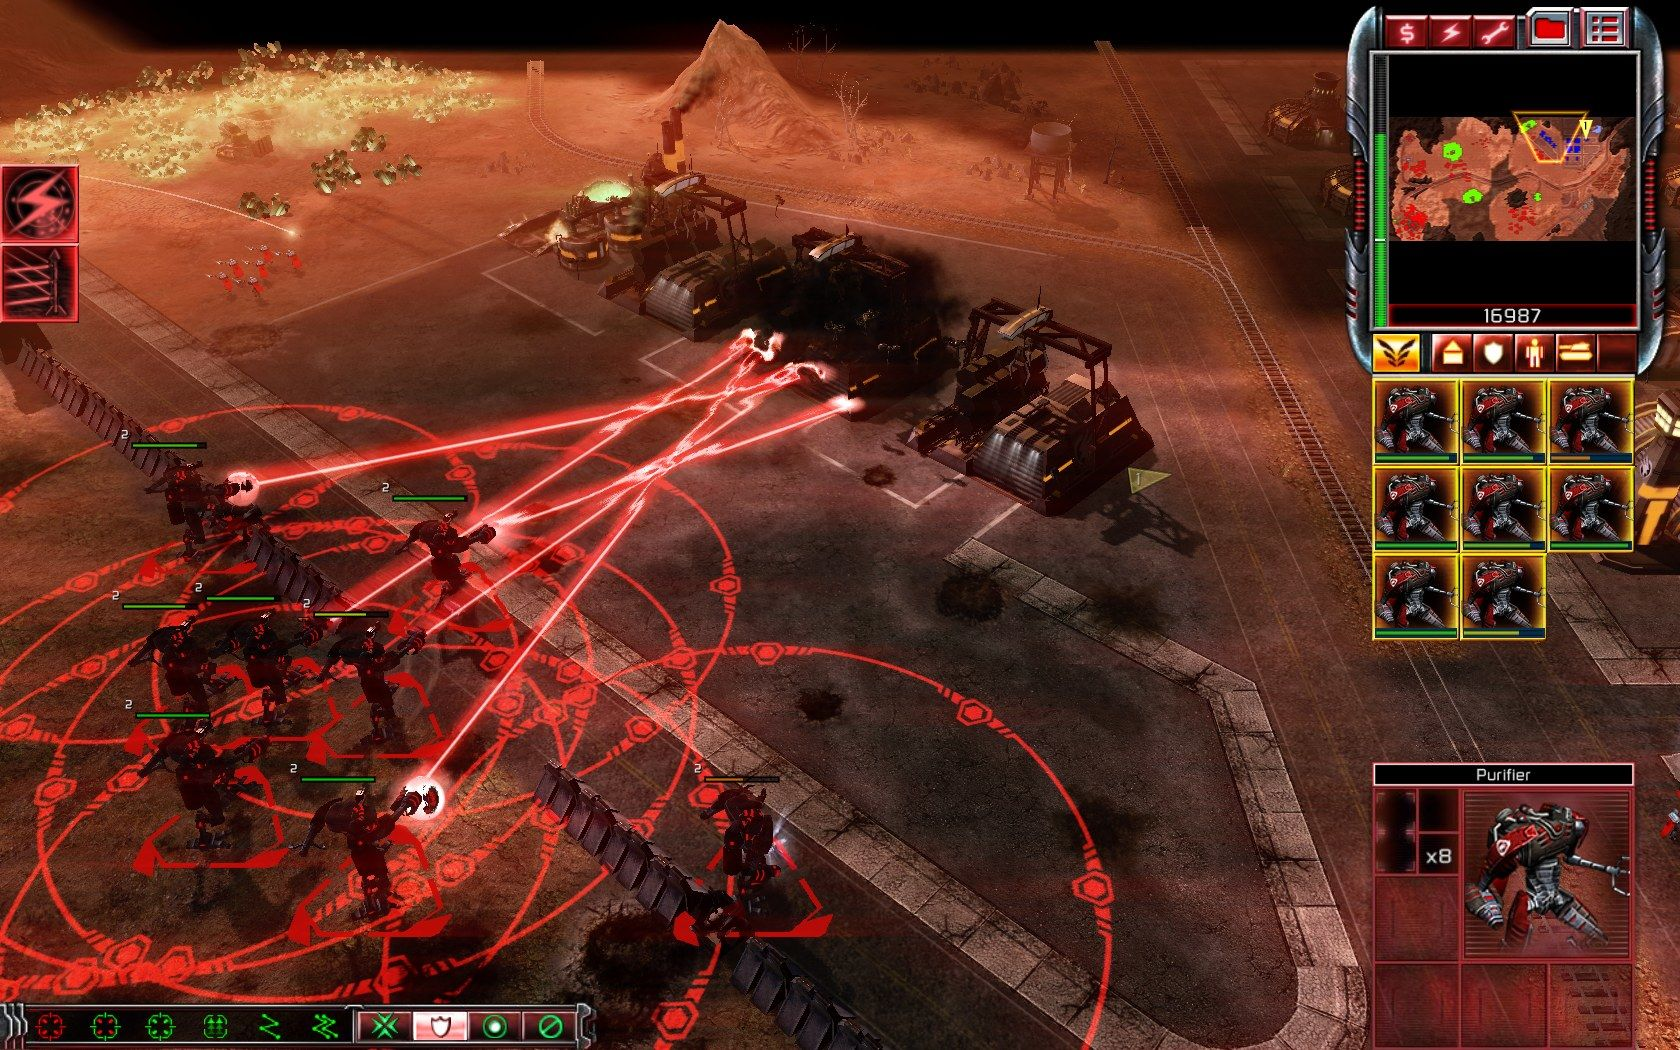 Command & Conquer 3: Kane's Wrath Windows Using Purifiers to take out the enemy base.